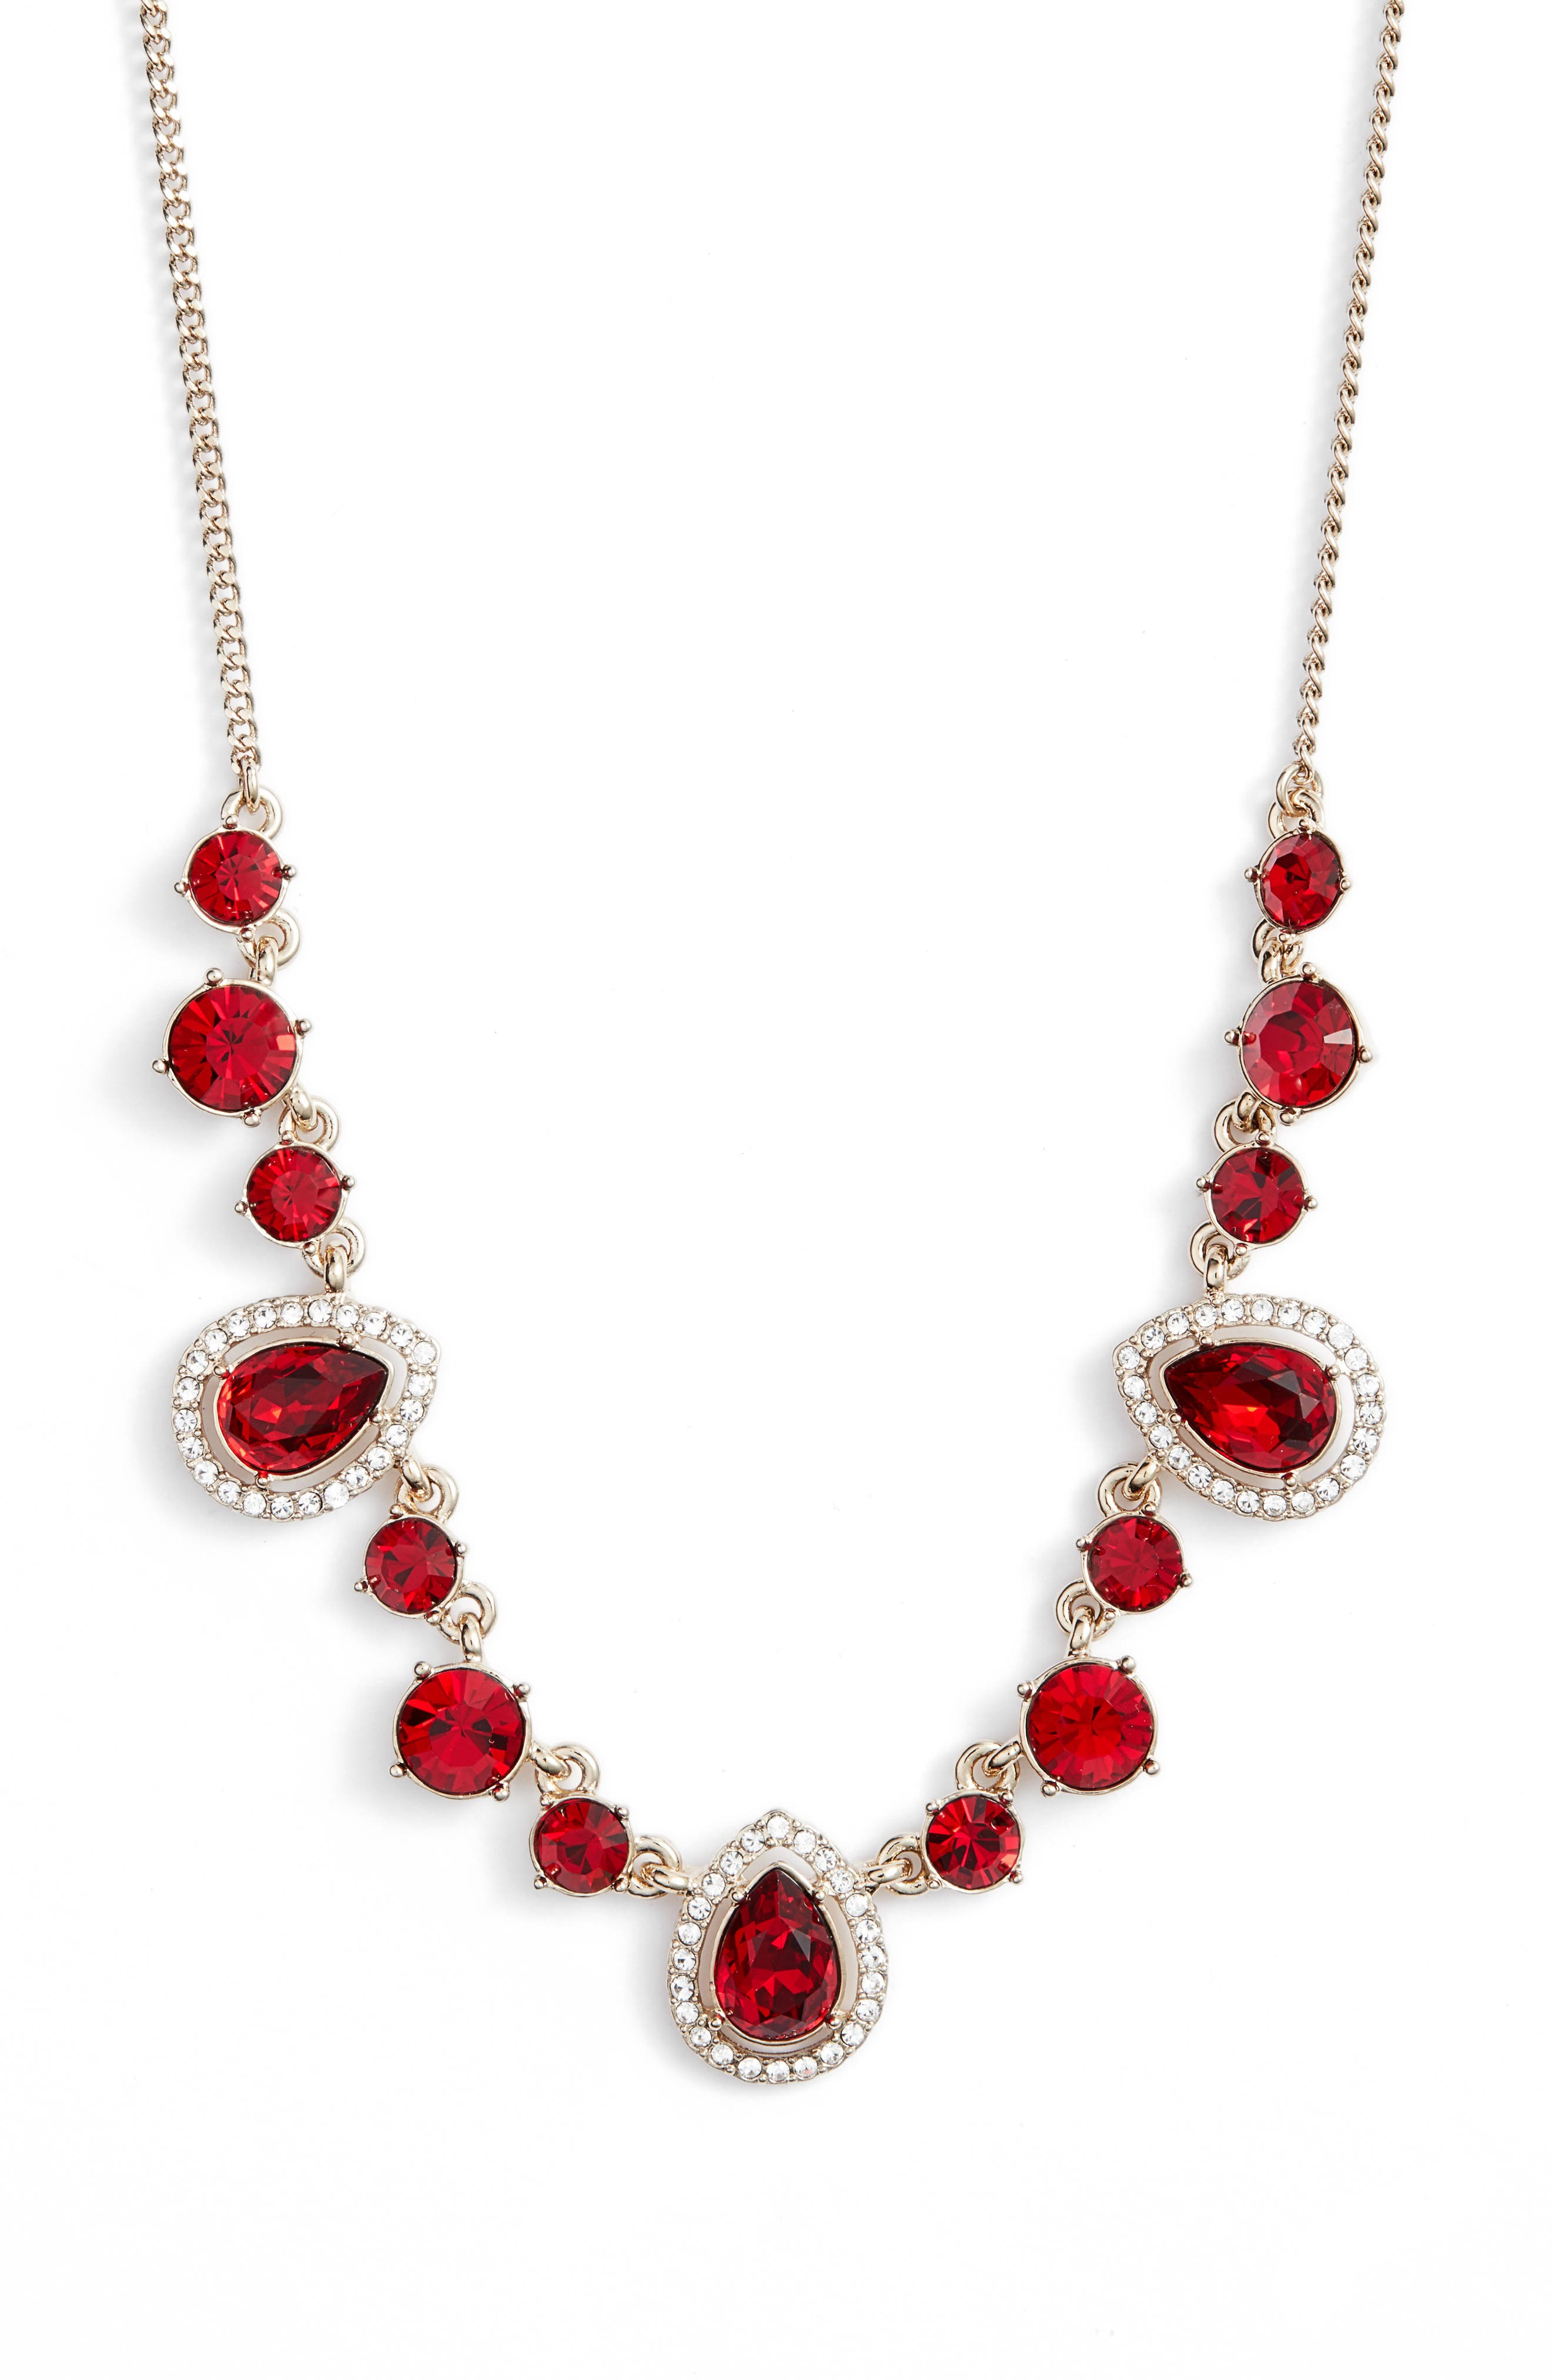 Teardrop Crystal Frontal Necklace,                             Main thumbnail 1, color,                             RED/ GOLD